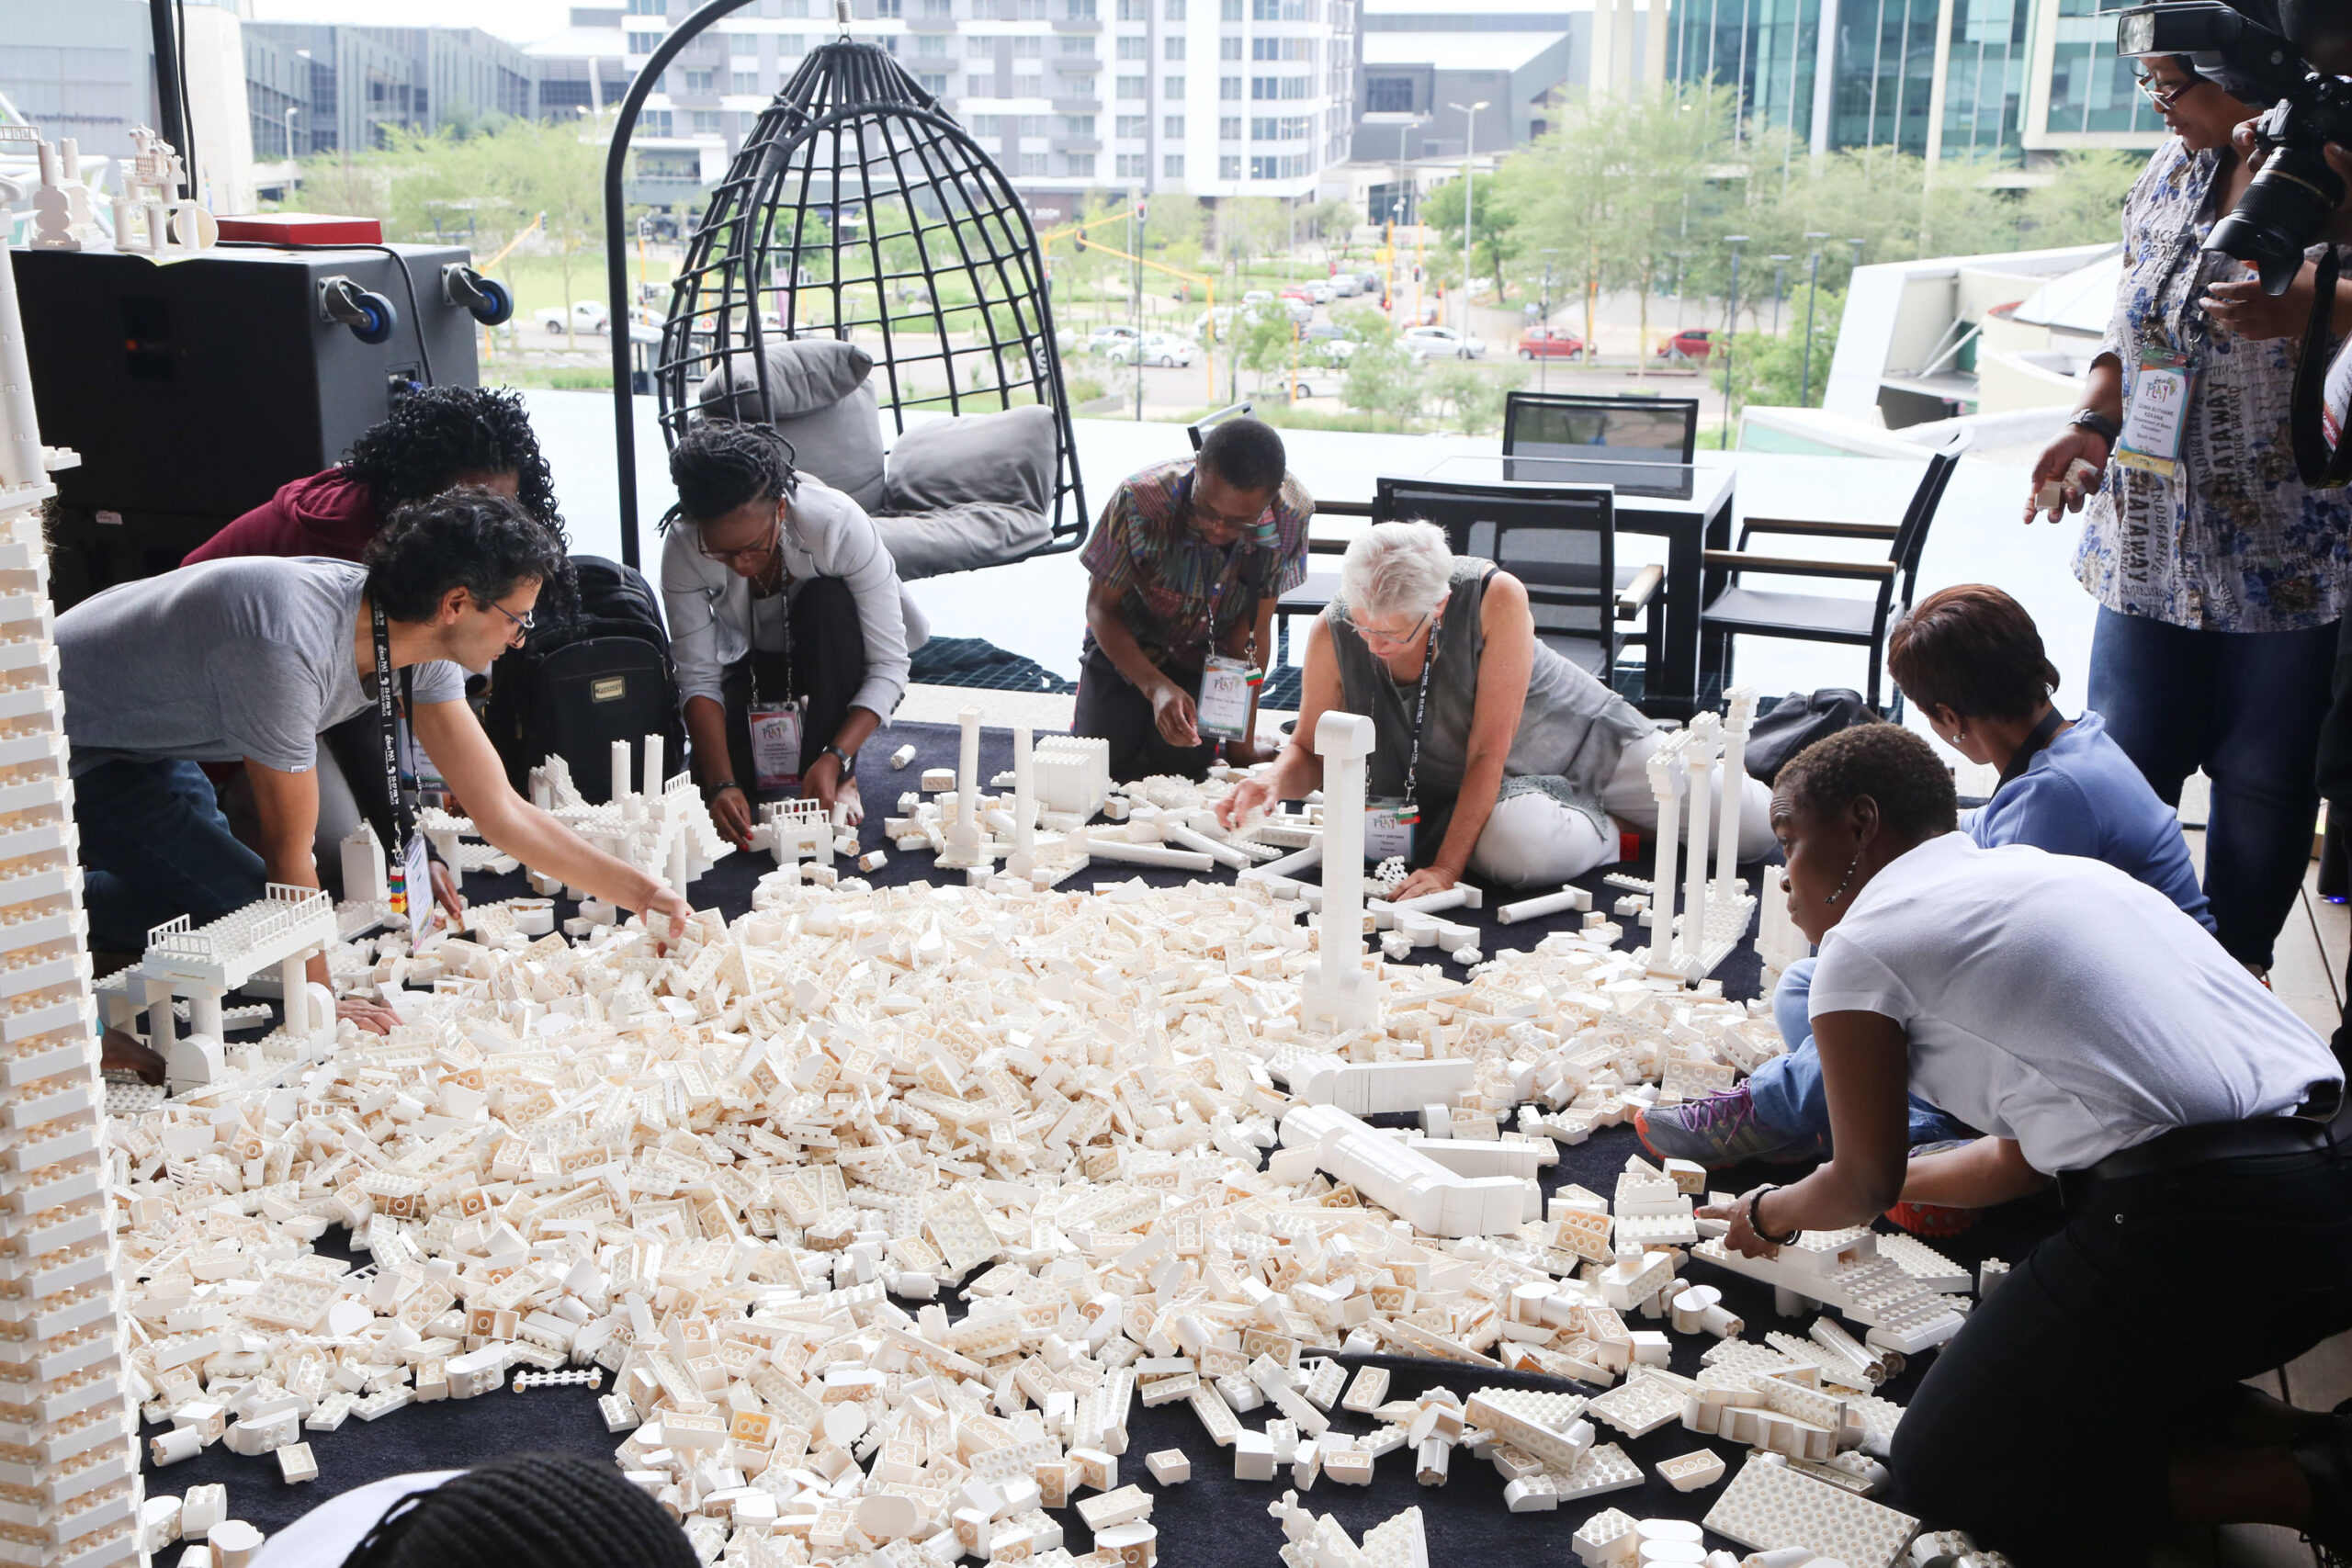 People building bridges with a giant pile of white DUPLO